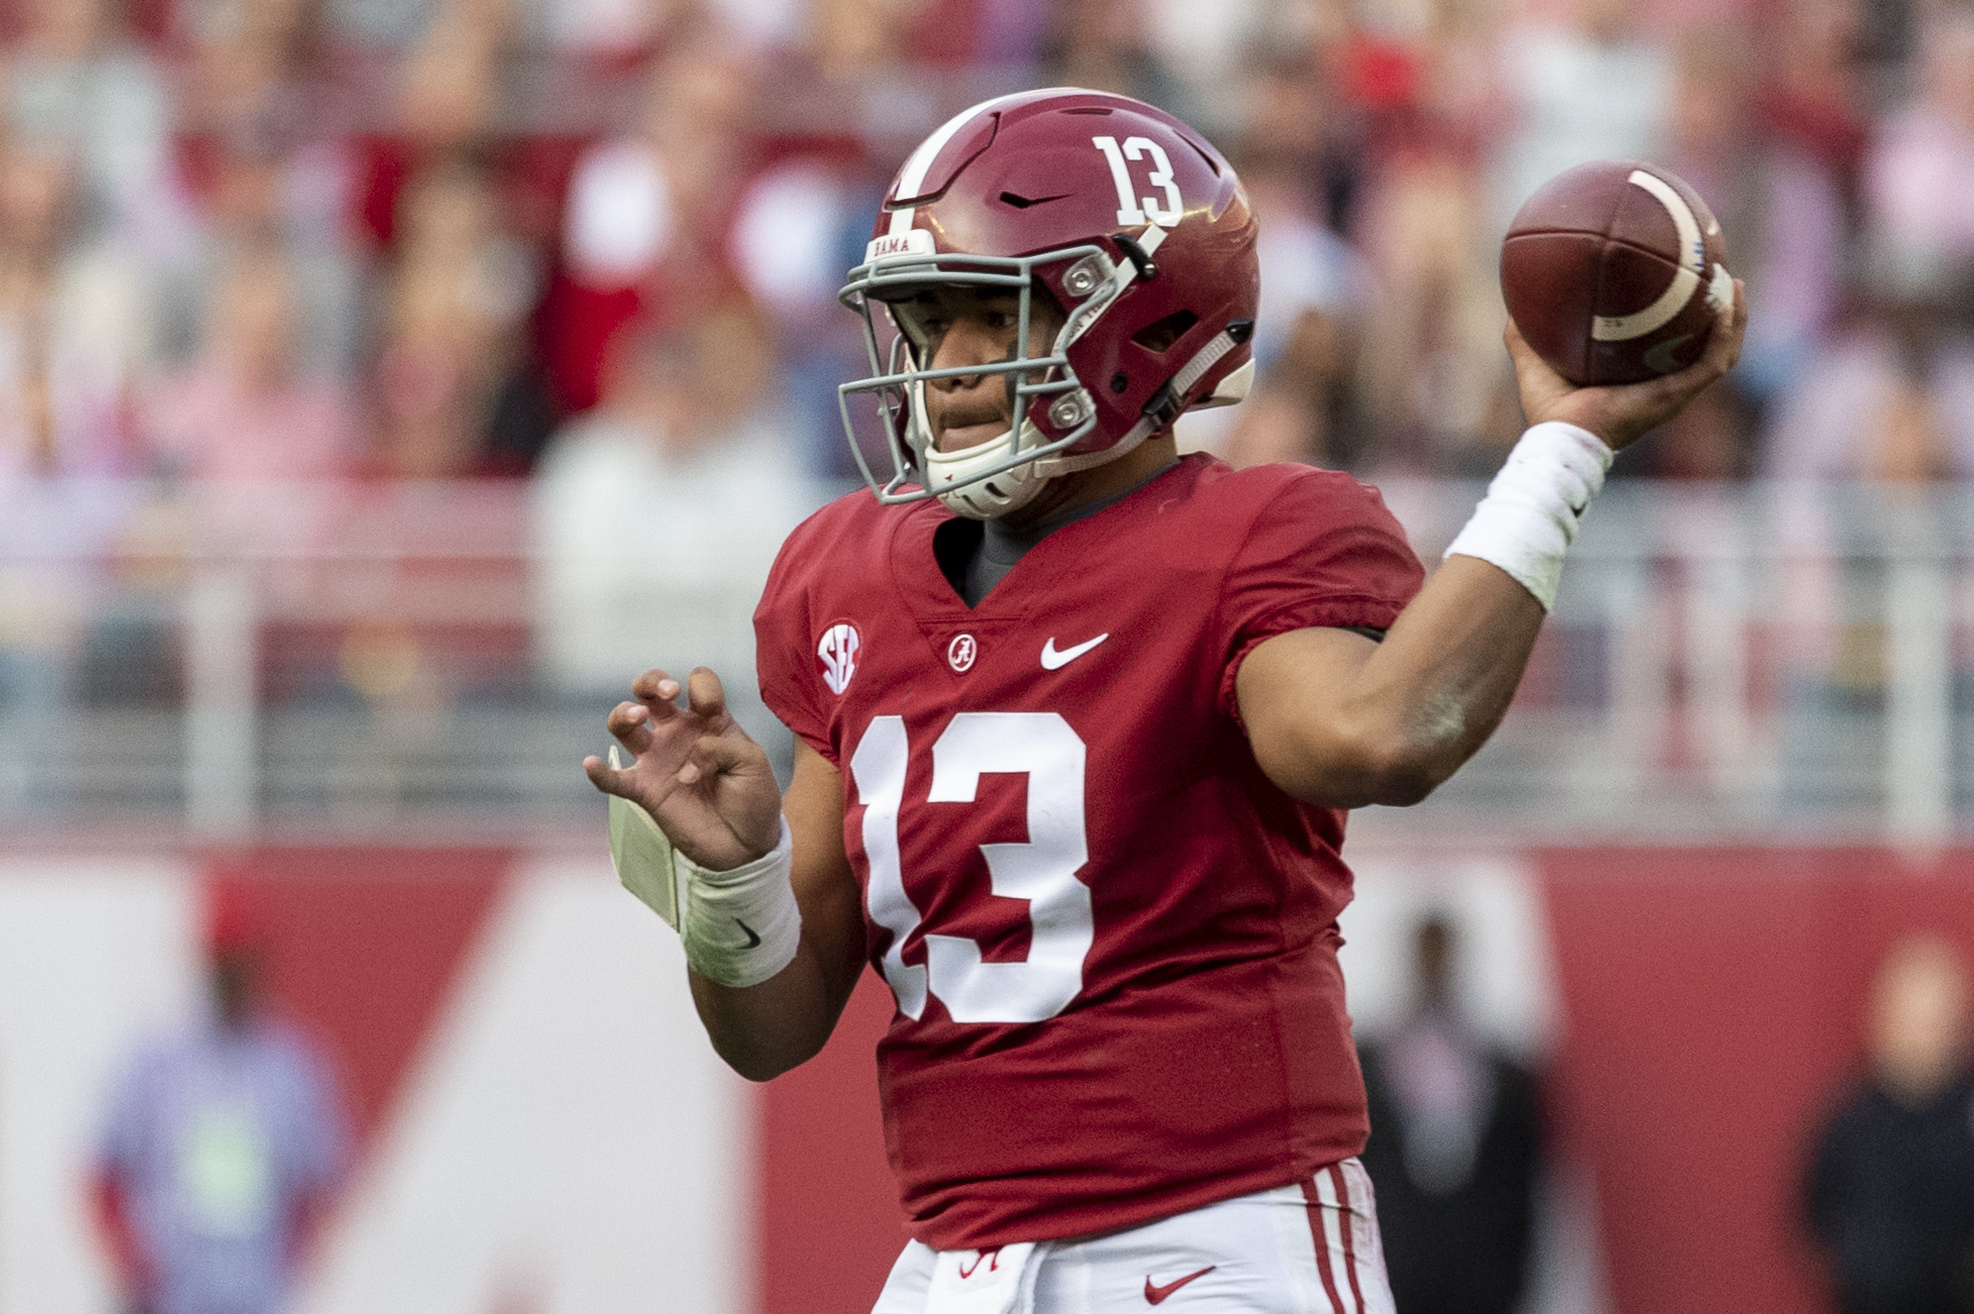 CFP National Championship 2019 Odds for Potential Matchups